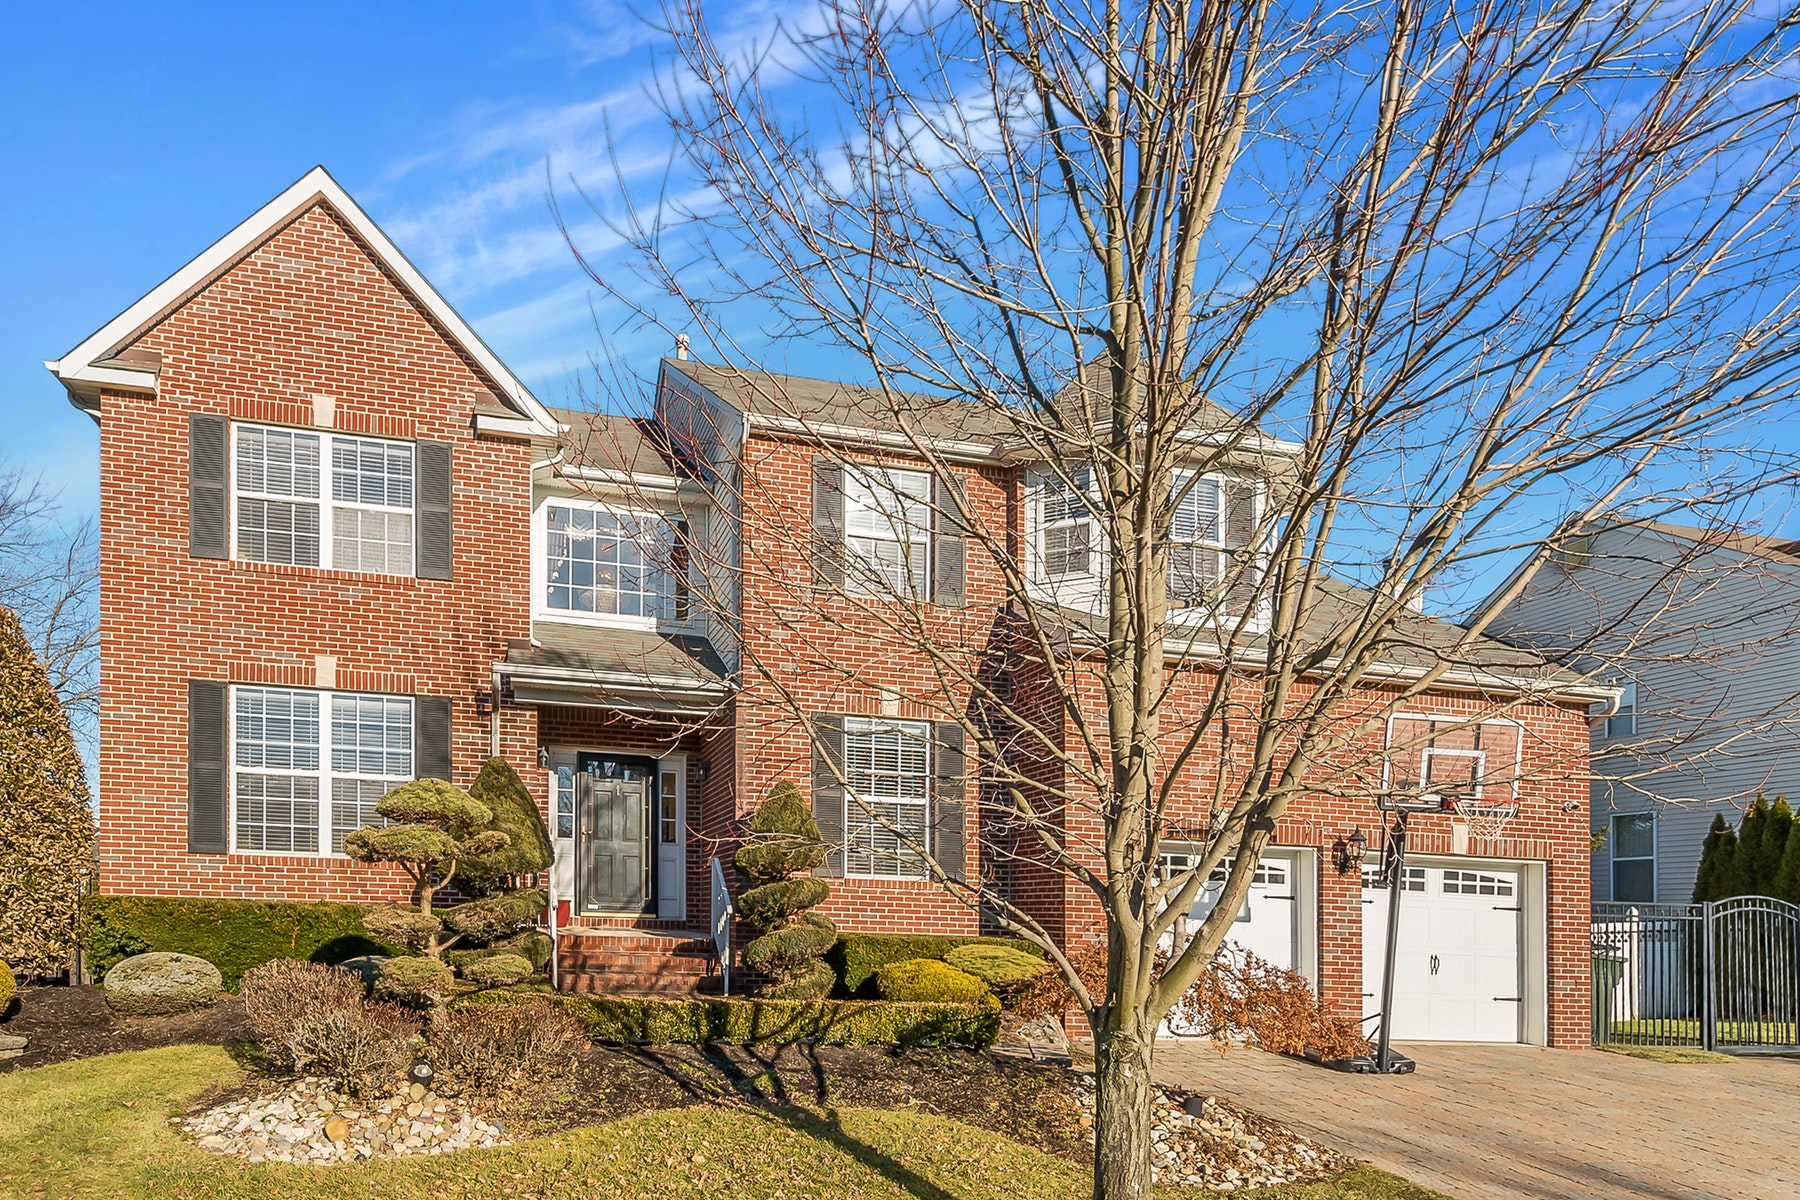 Single Family Home for Sale at LIVE Scenic 1 Peregrine Drive, Marlboro, New Jersey 07751 United States